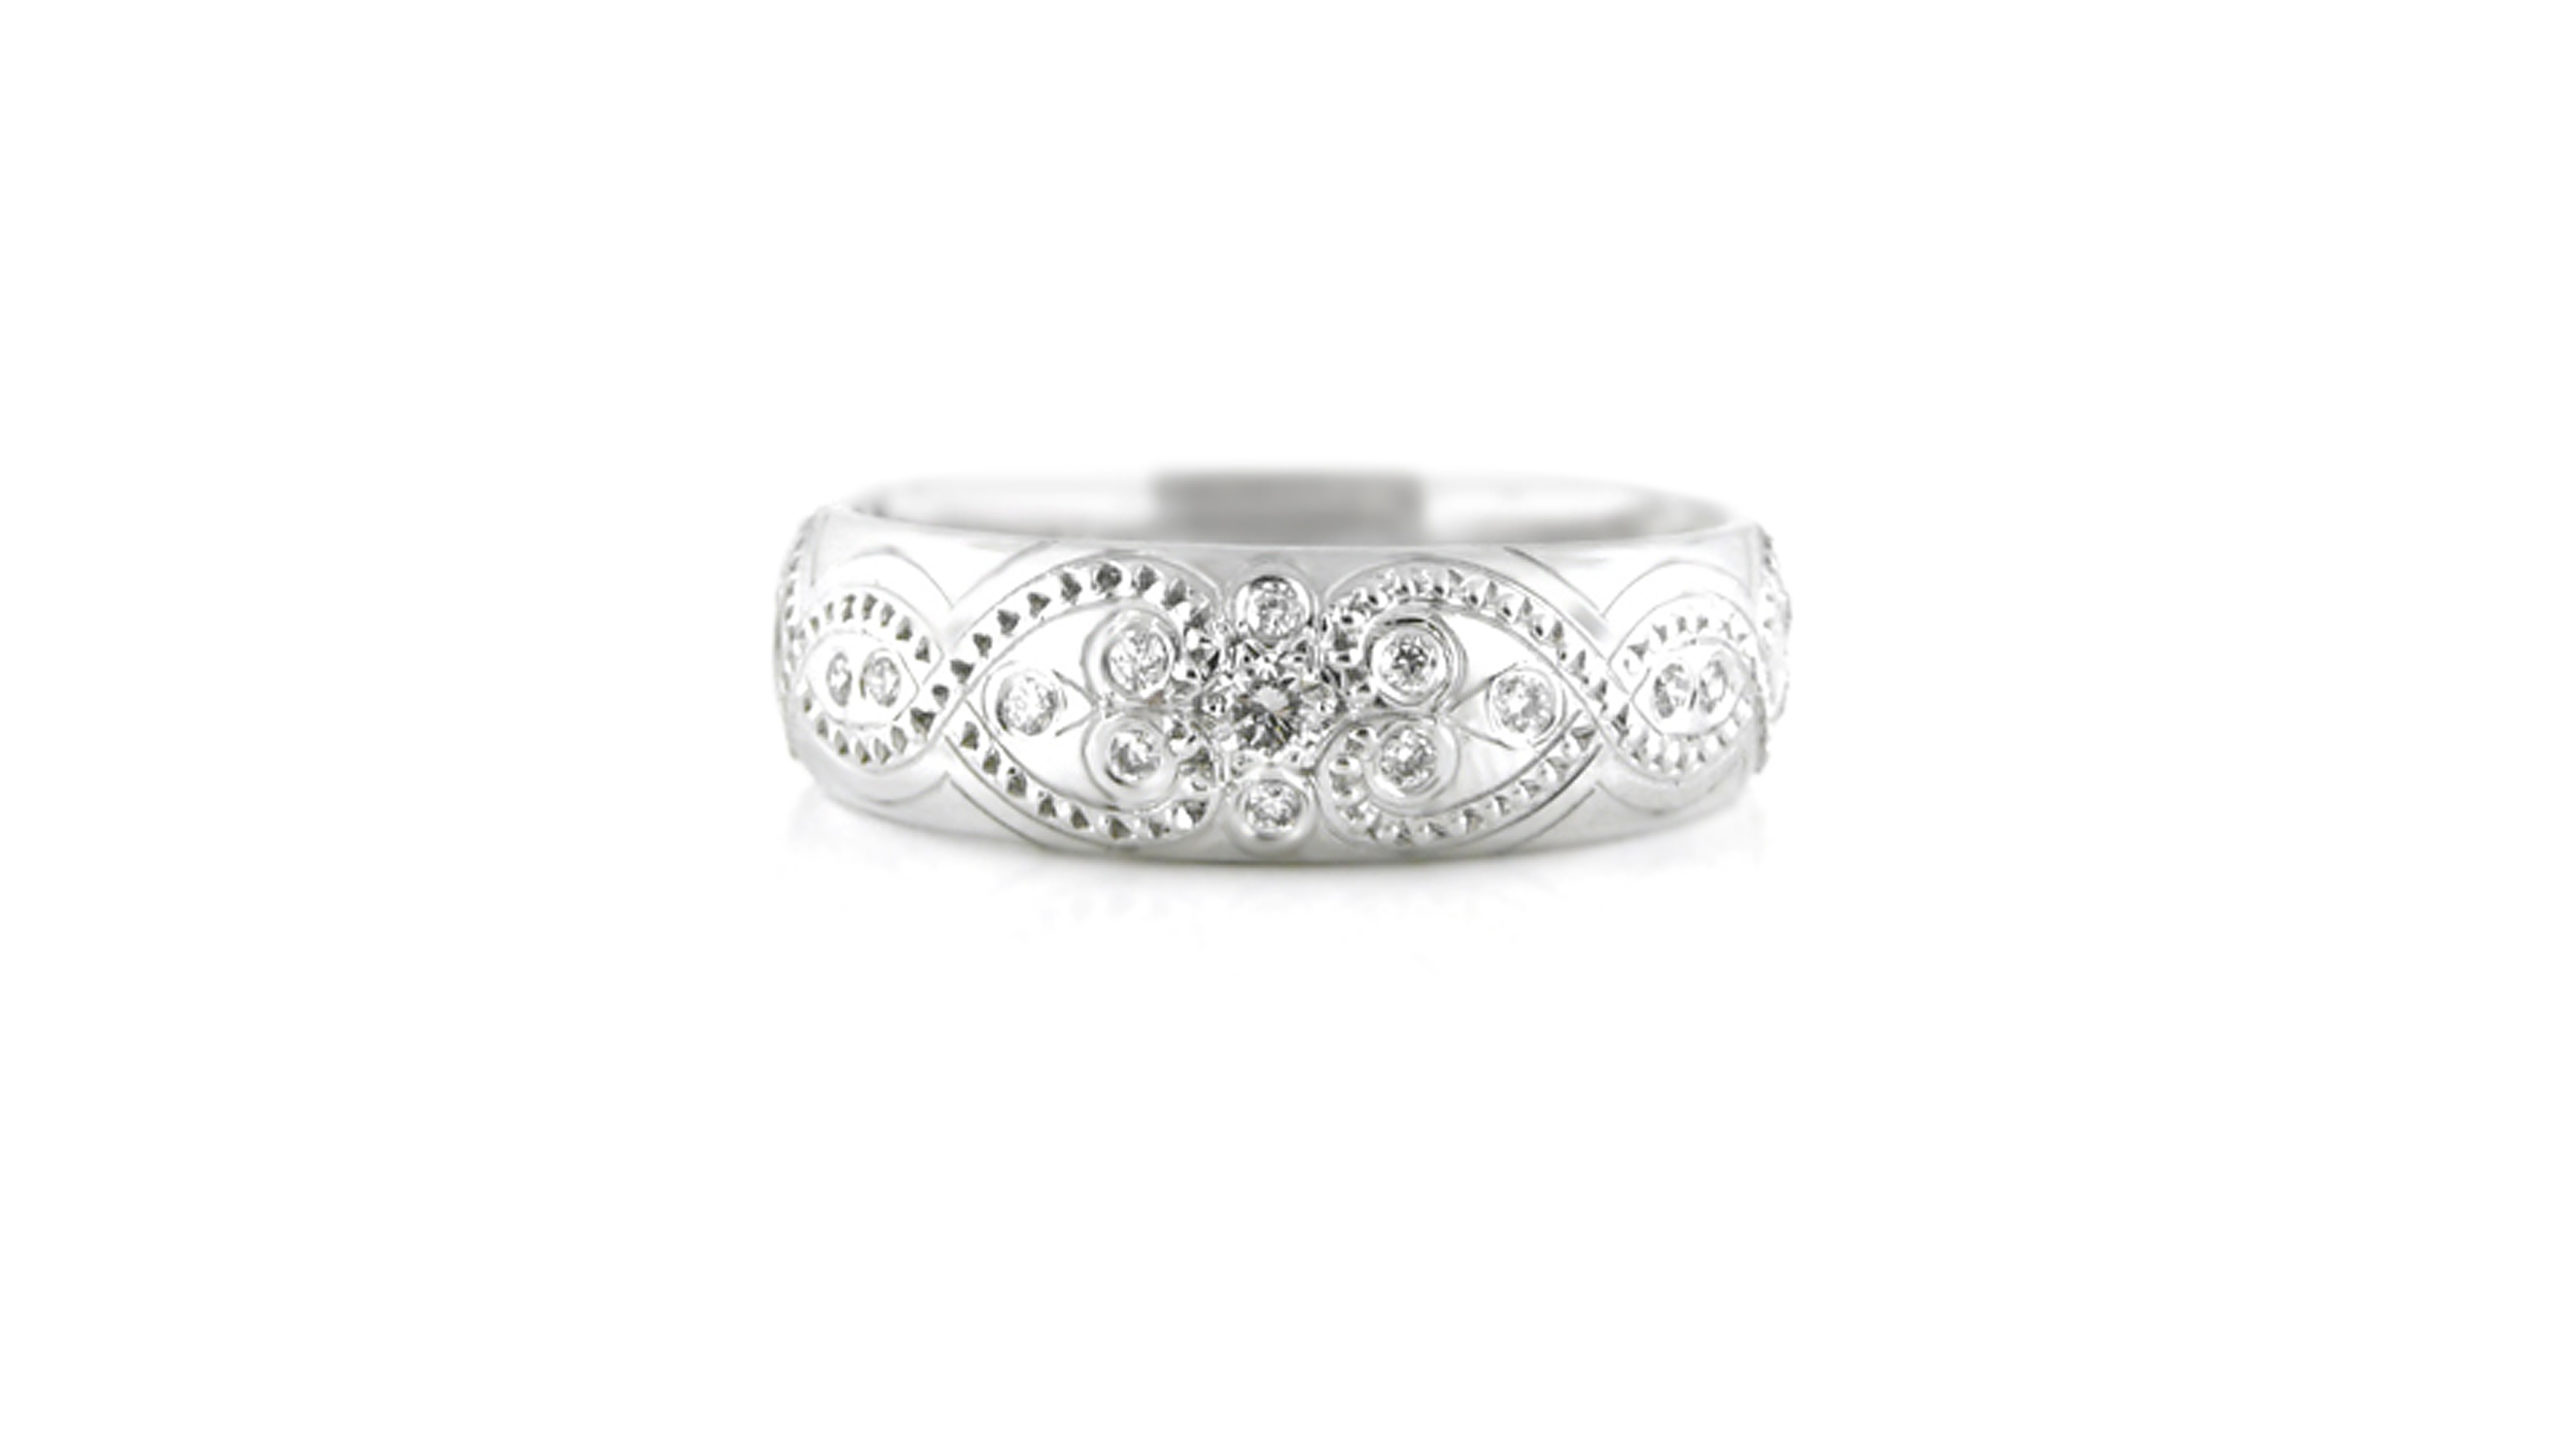 diamond ring with engraved band | A beautiful 18 carat diamond ring patterned with floral motifs and scrolls